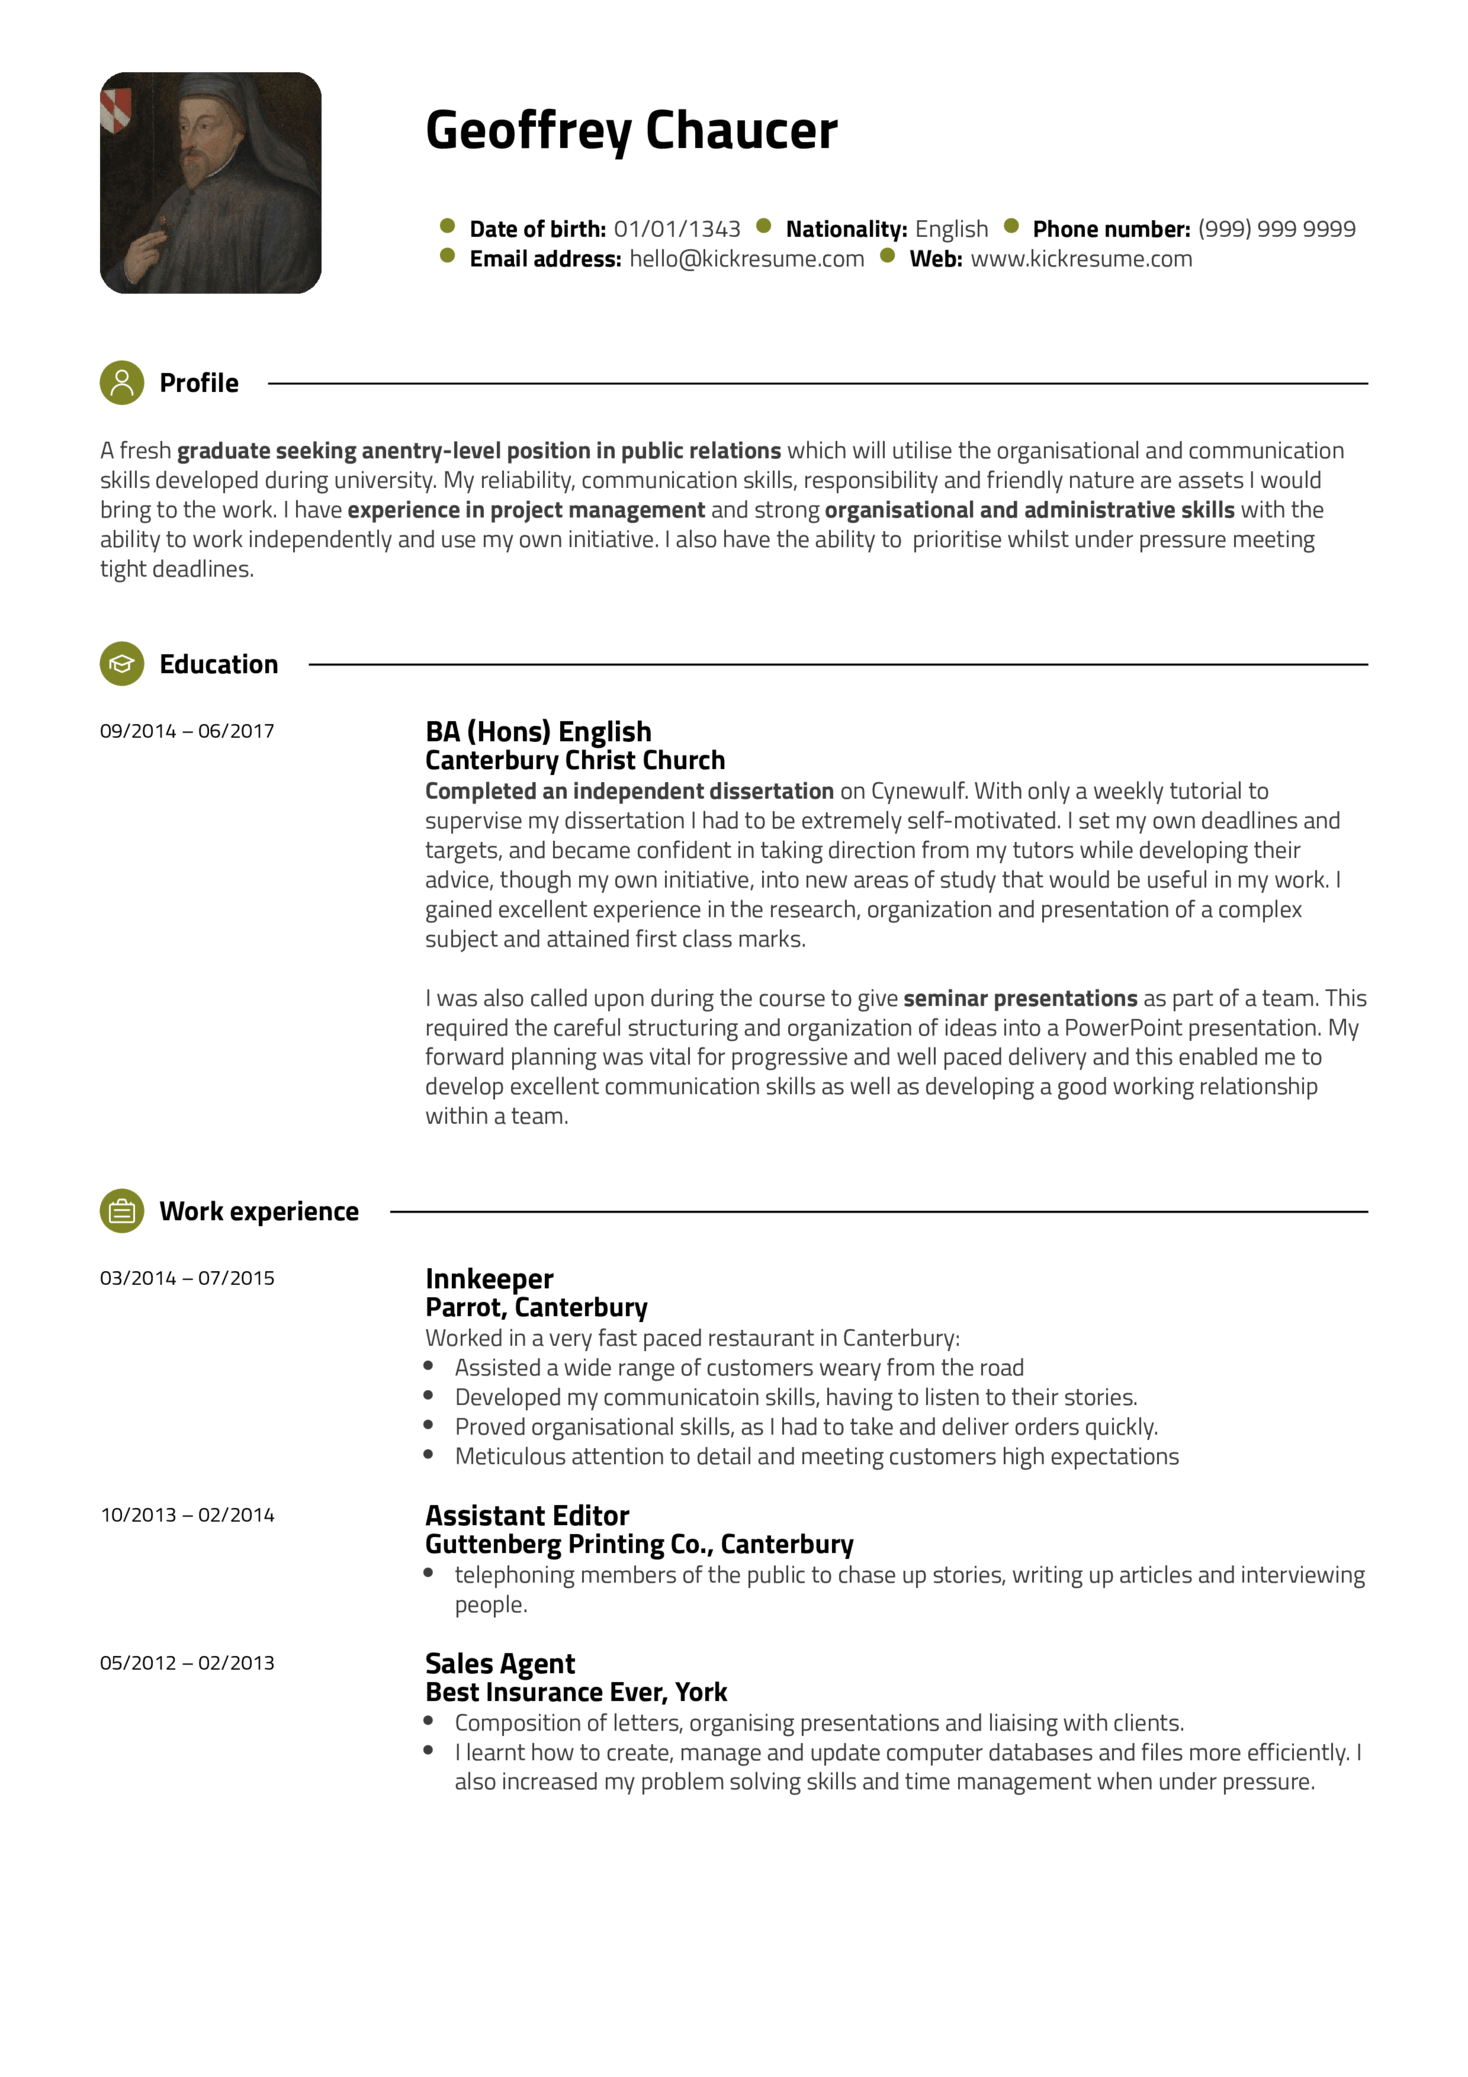 Student Resume Public Relations | Resume samples | Career help center